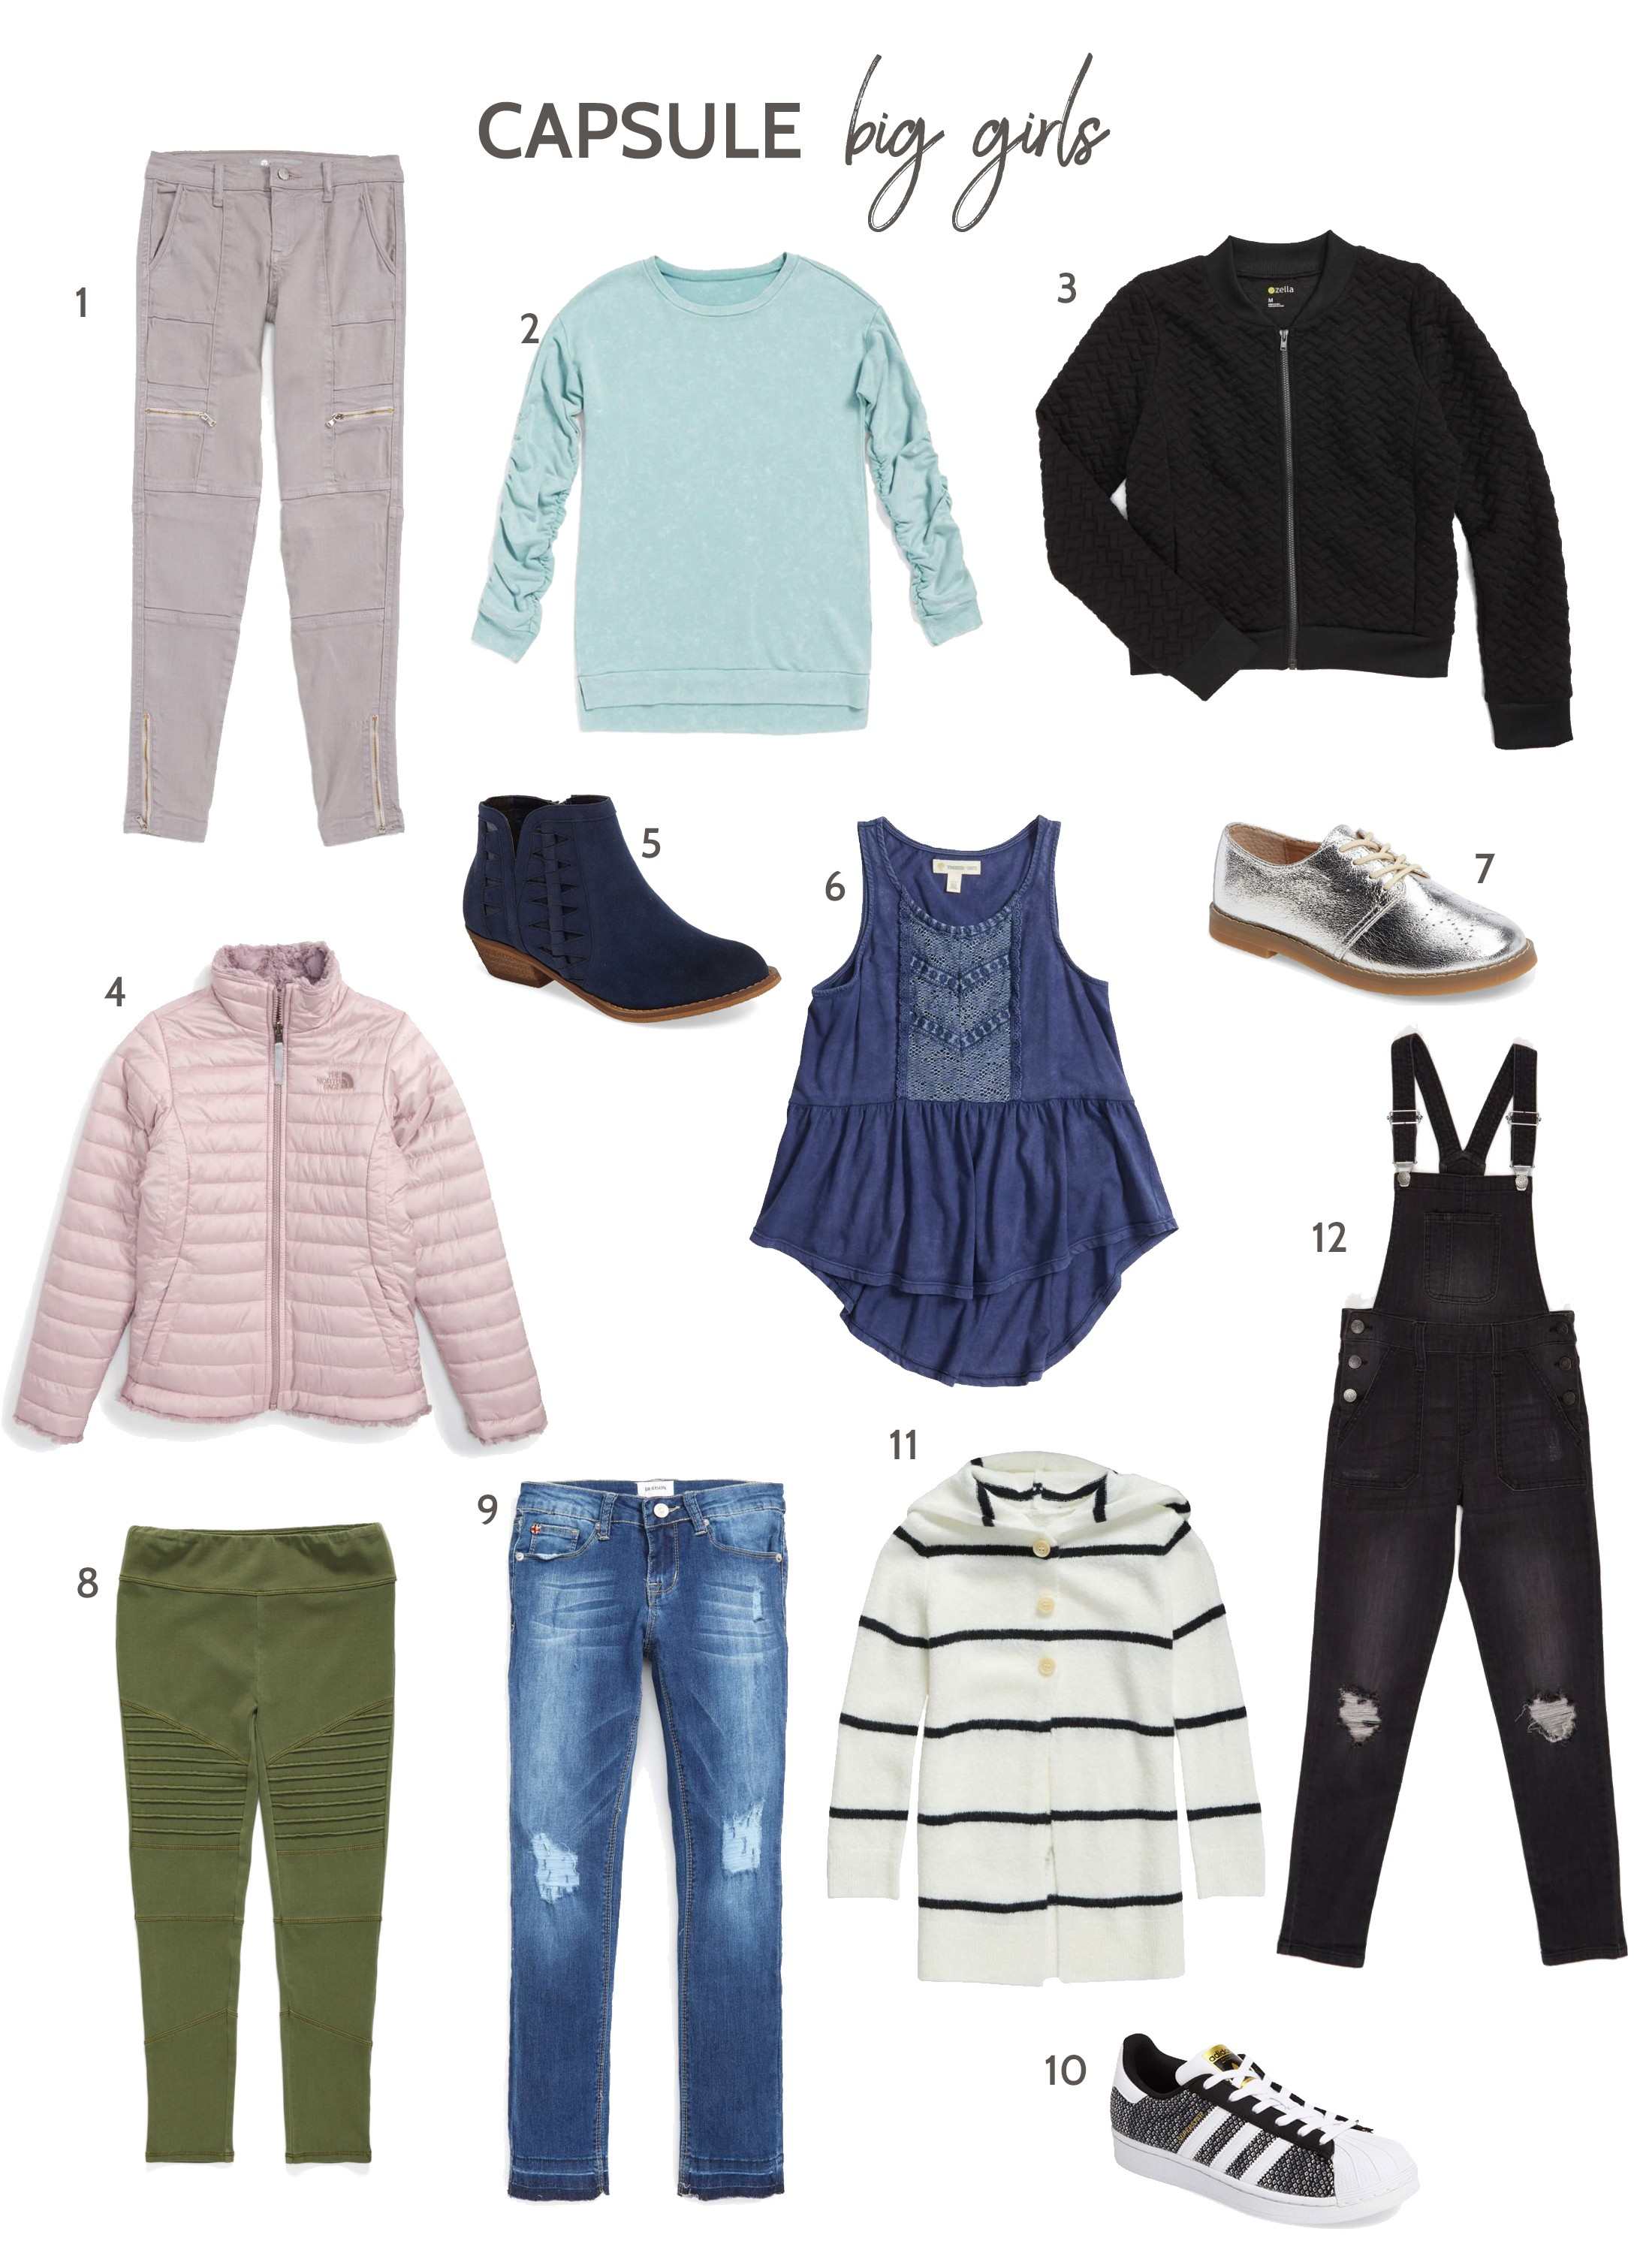 aa9d2c3cba232 Fall Capsule Wardrobes for Girls (Featuring Nordstrom Anniversary Sale  Kids) | The Mom Edit